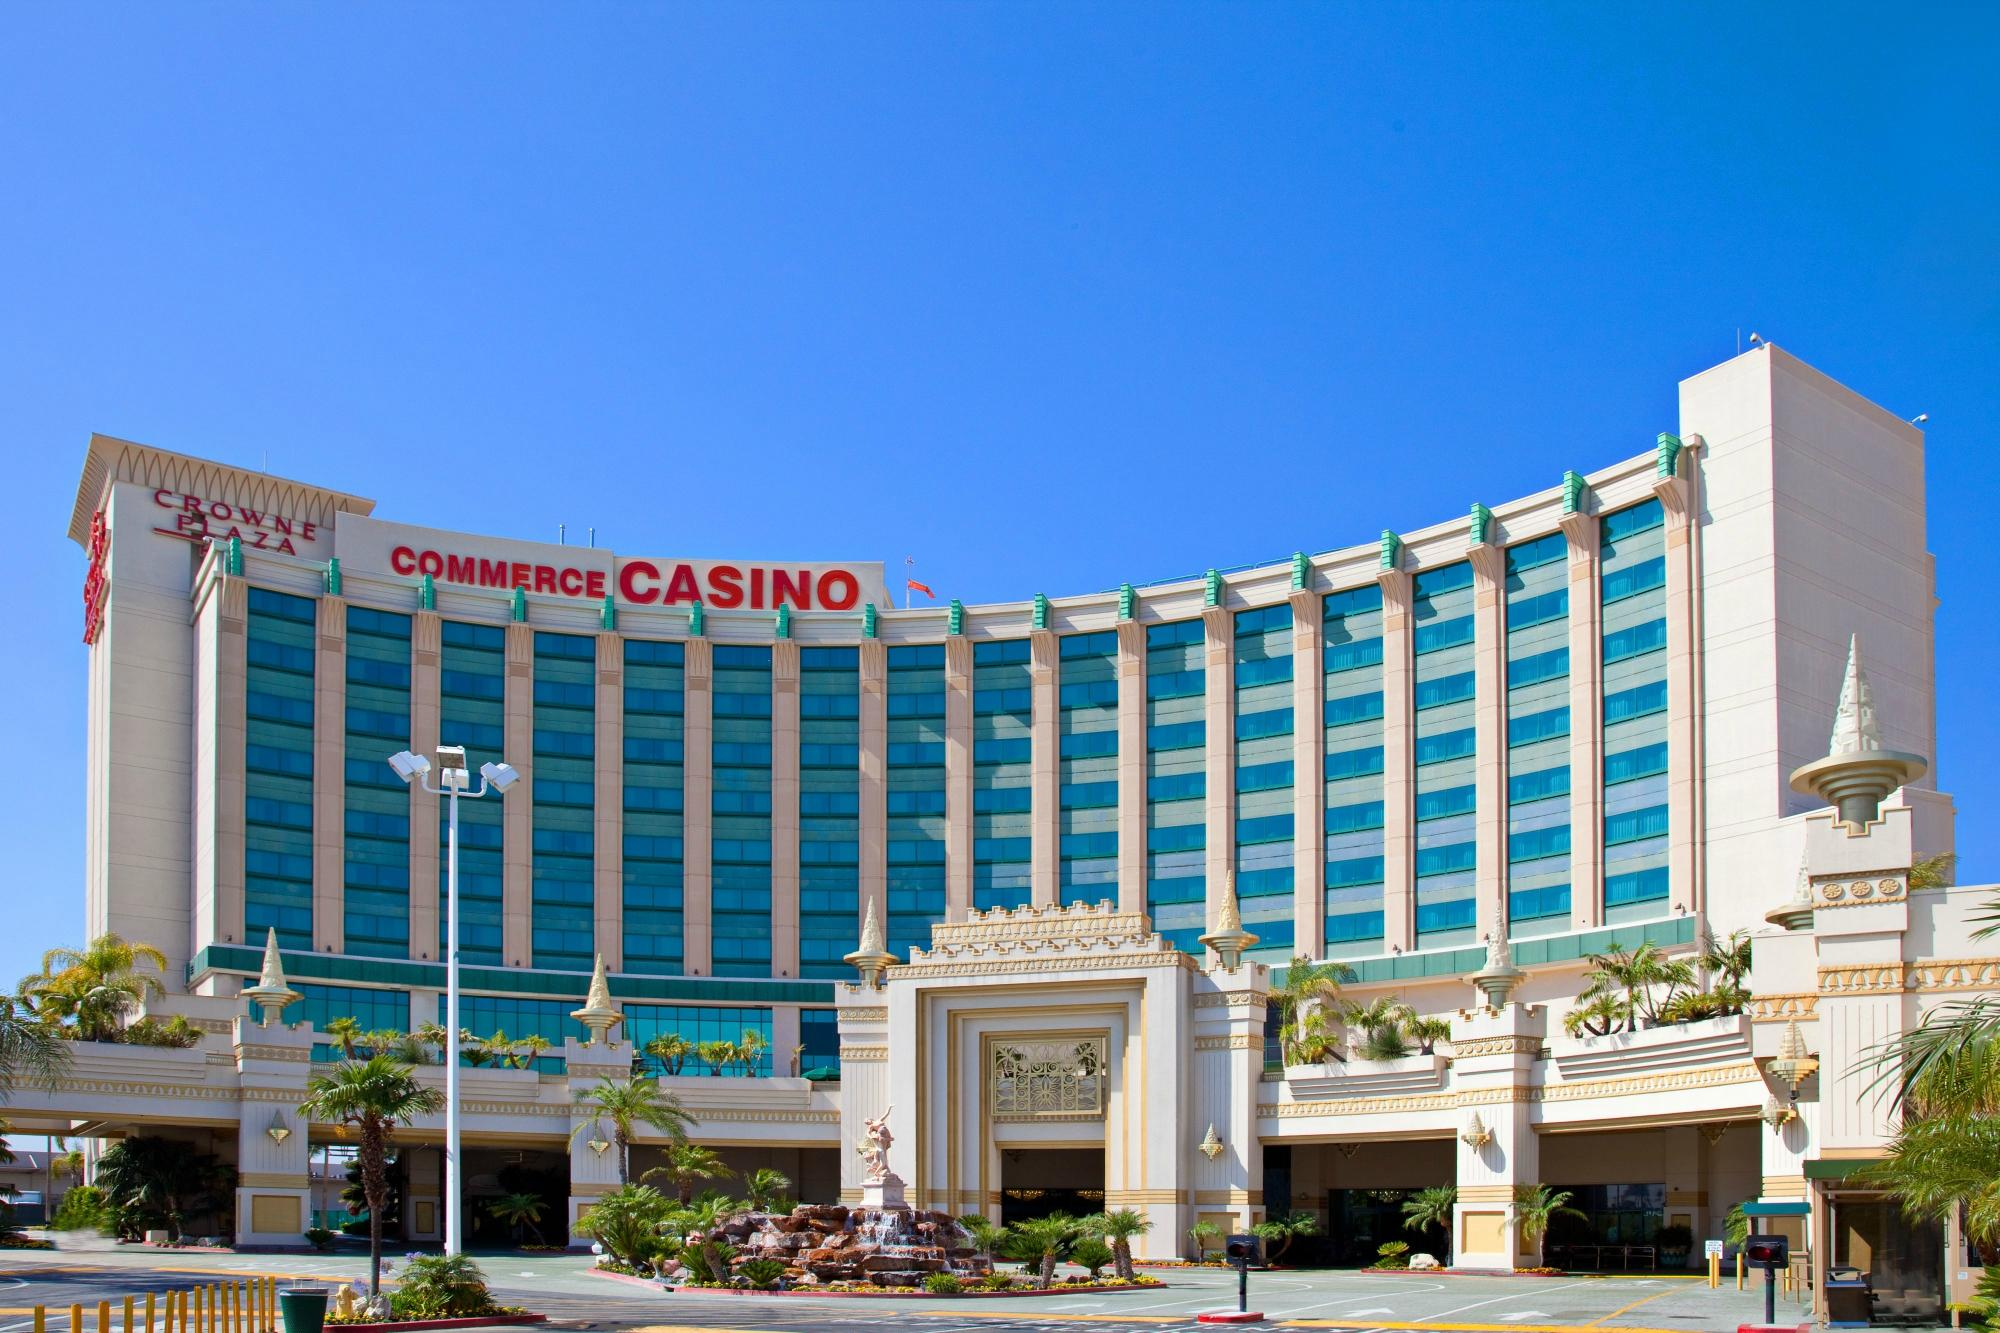 Commerce city casino hotel tunica casino job openings